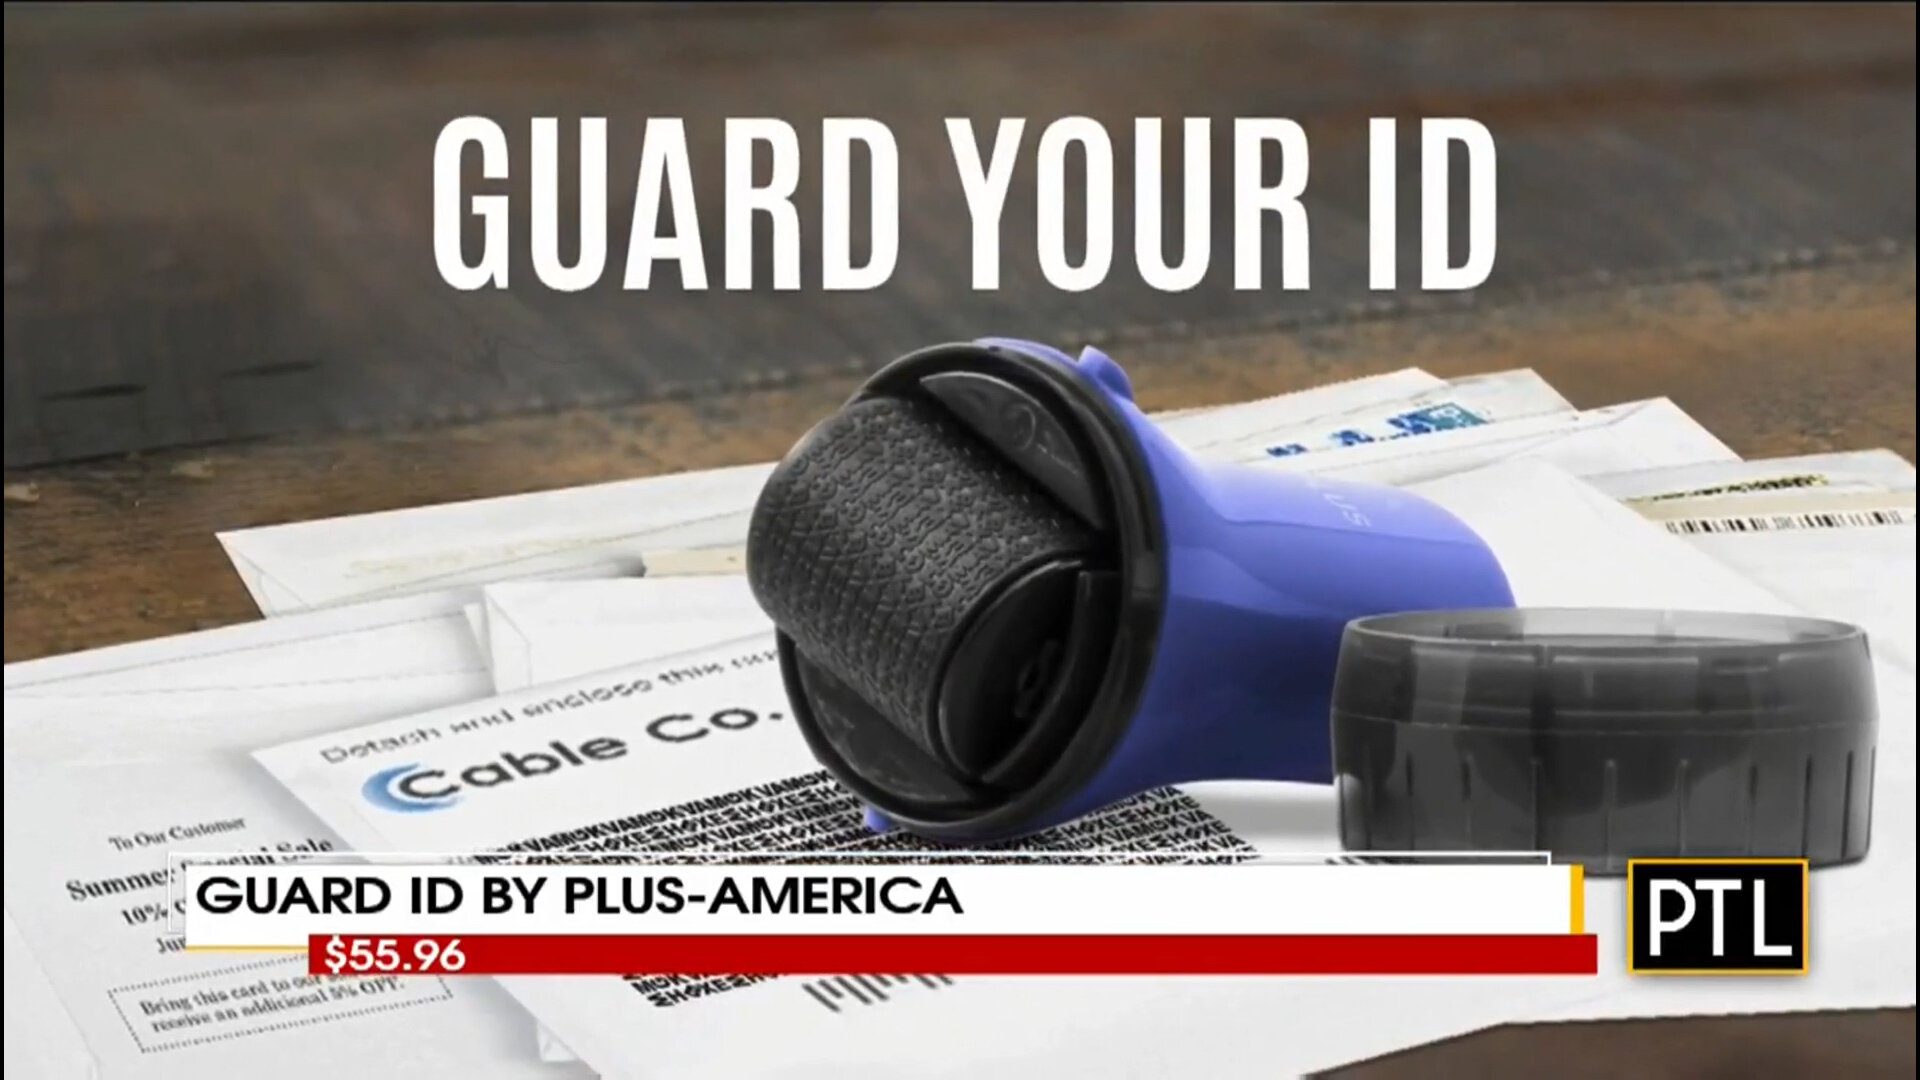 GUARD ID by PLUS-AMERICA - $55.96Shop Now